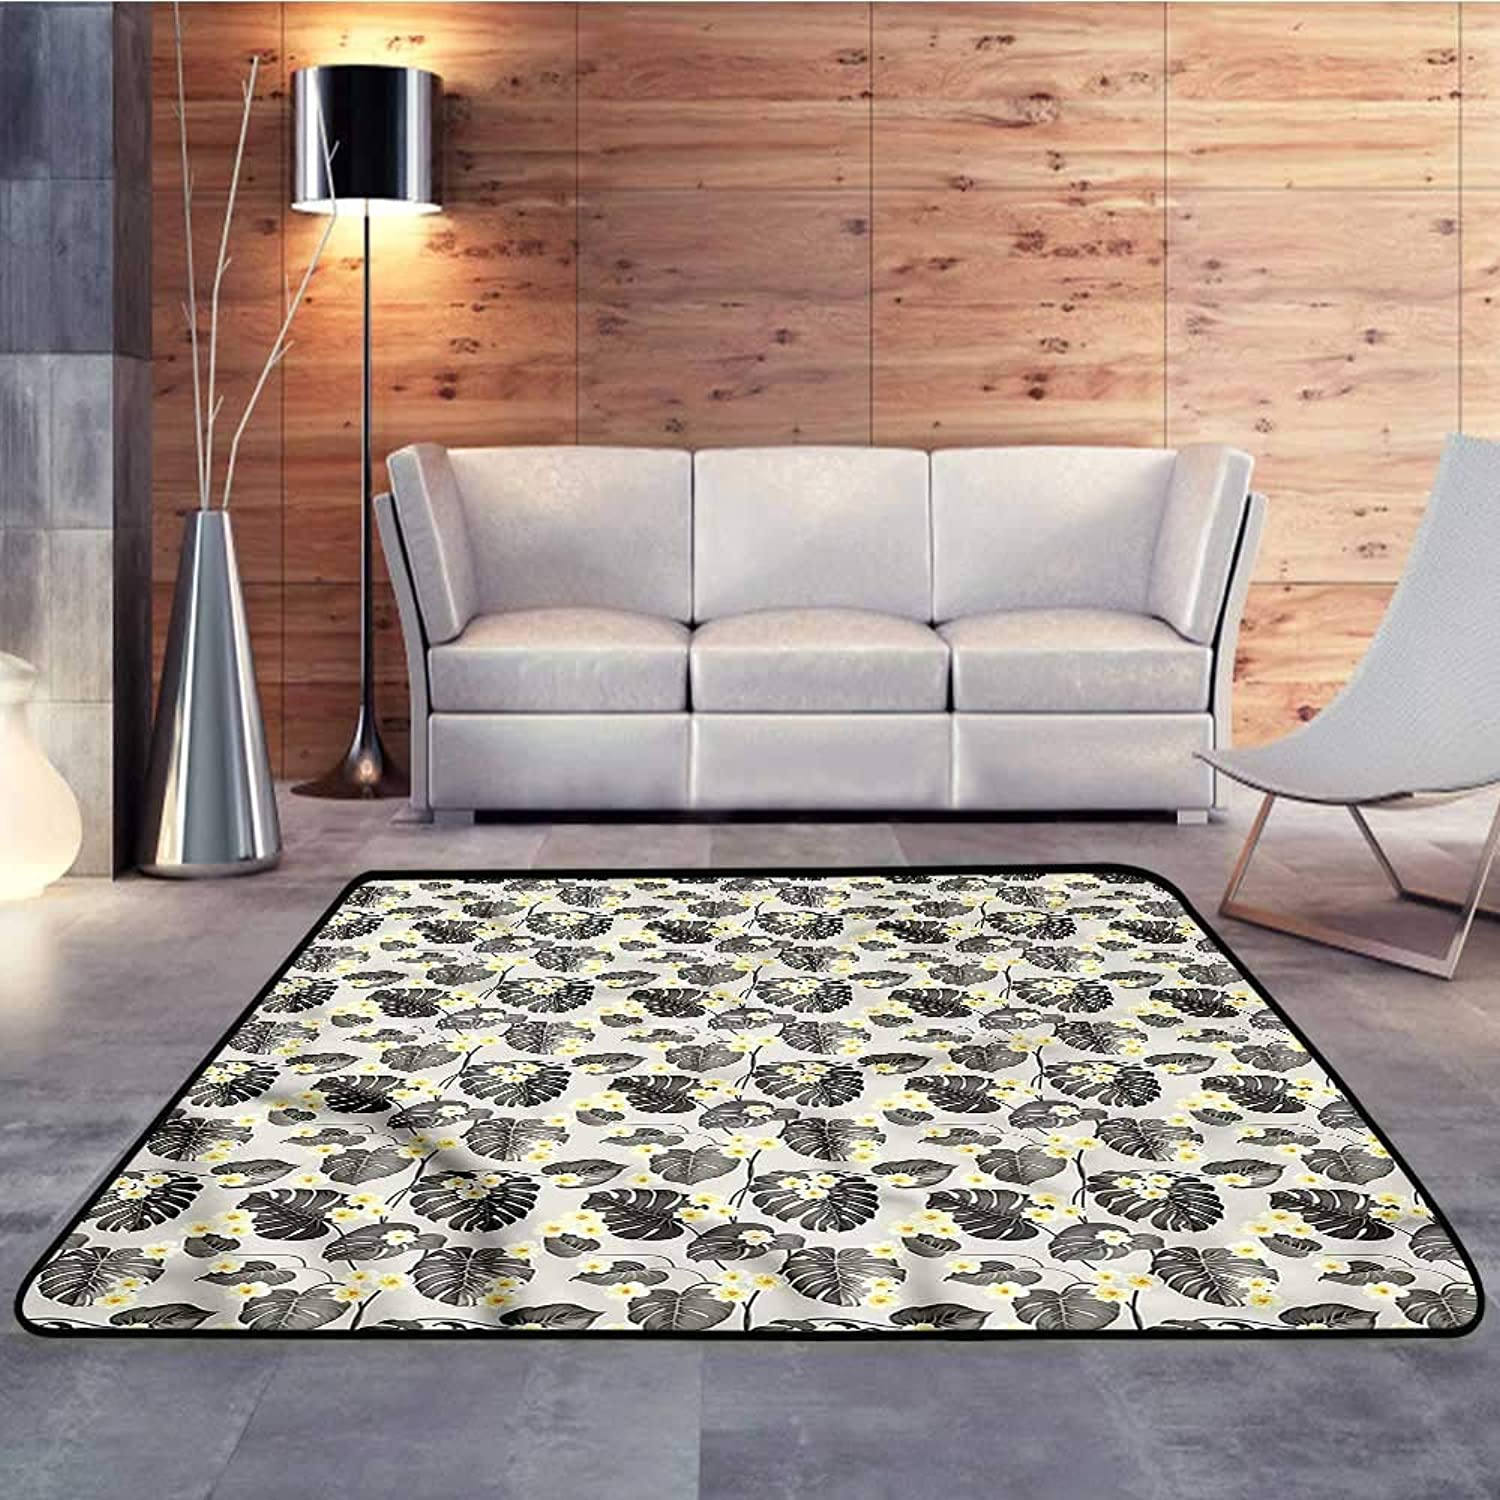 Carpet mat,Grey and Yellow,Tropical PlumeriaW 35  x L59 Floor Mat Entrance Doormat